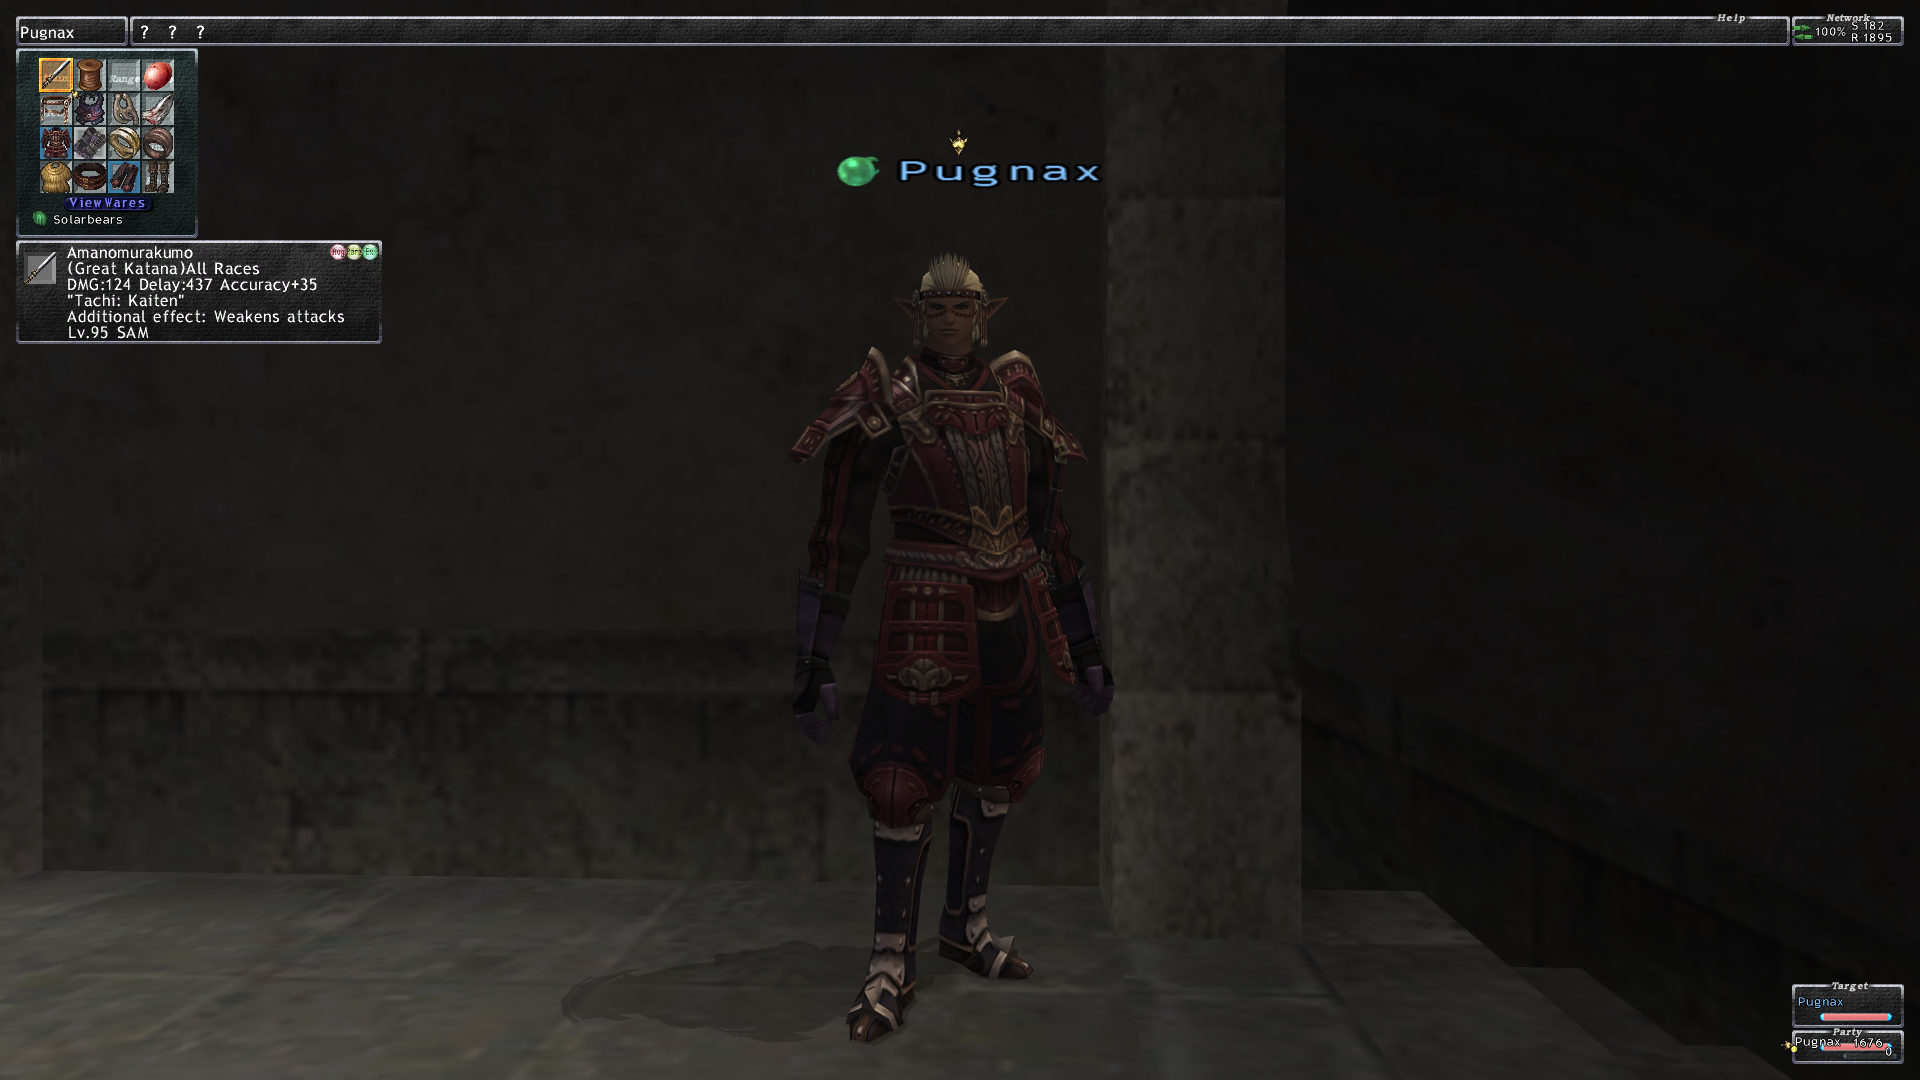 pugnax179 ffxi doing this that comes love down proph also caliburn grats tool shame like prophett moirai leviathan list relicmythic weapons seems completed known time long forever